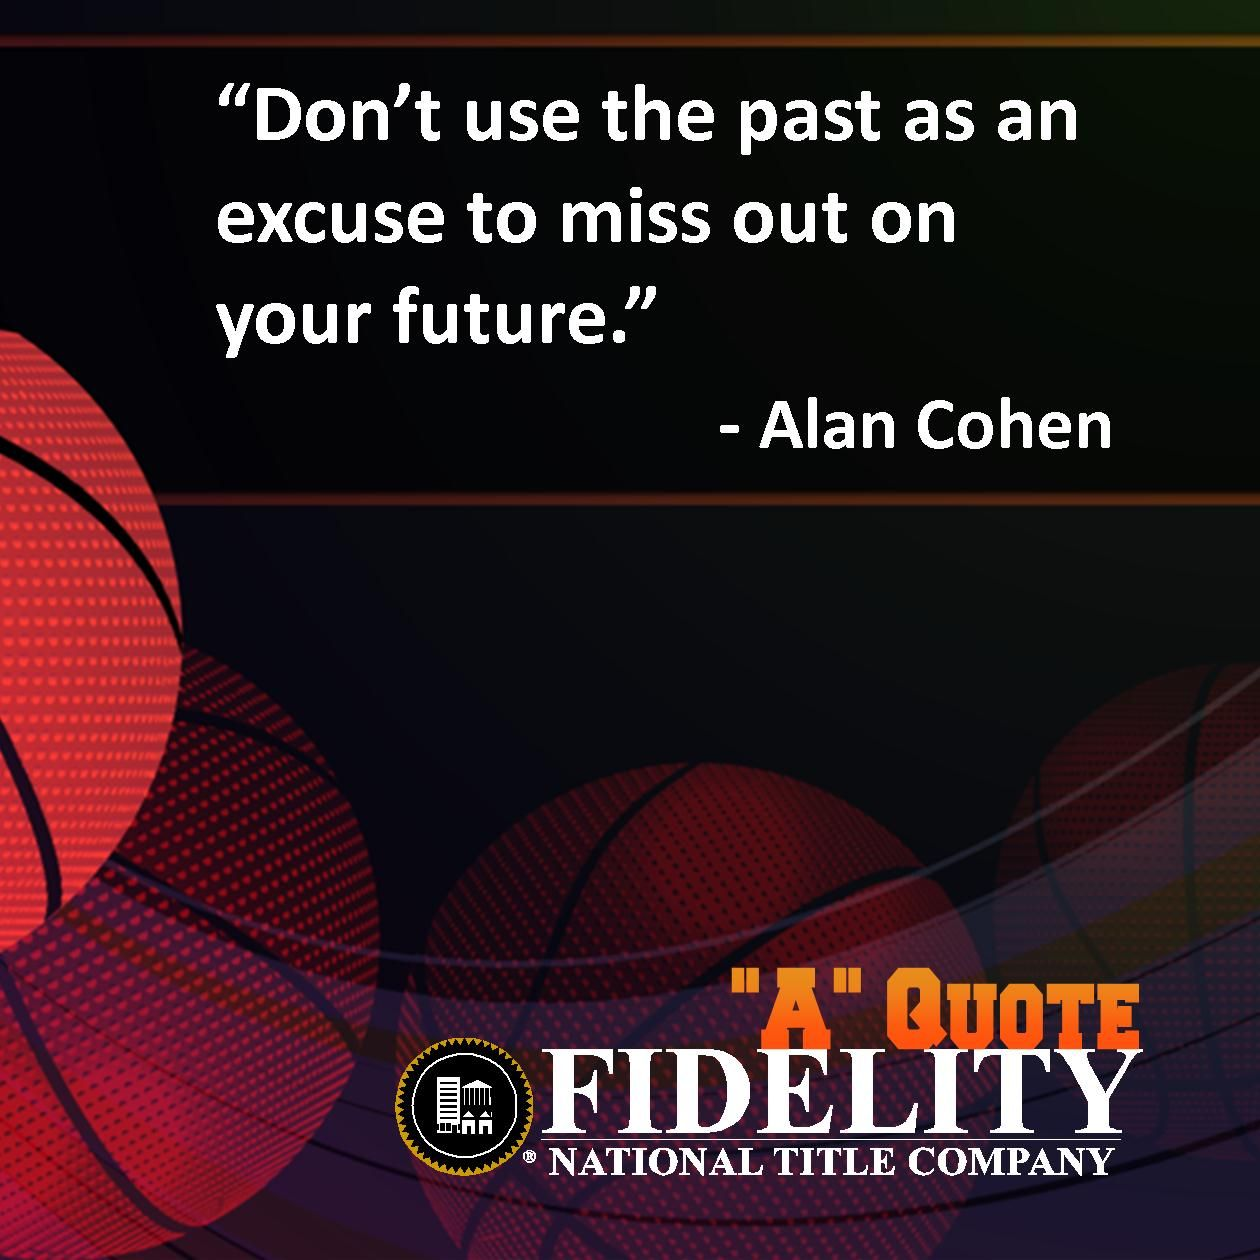 """A"" Quote with Fidelity National Title Company (Colorado):  ""Don't use the past as an excuse to miss out on your future."" – Alan Cohen"